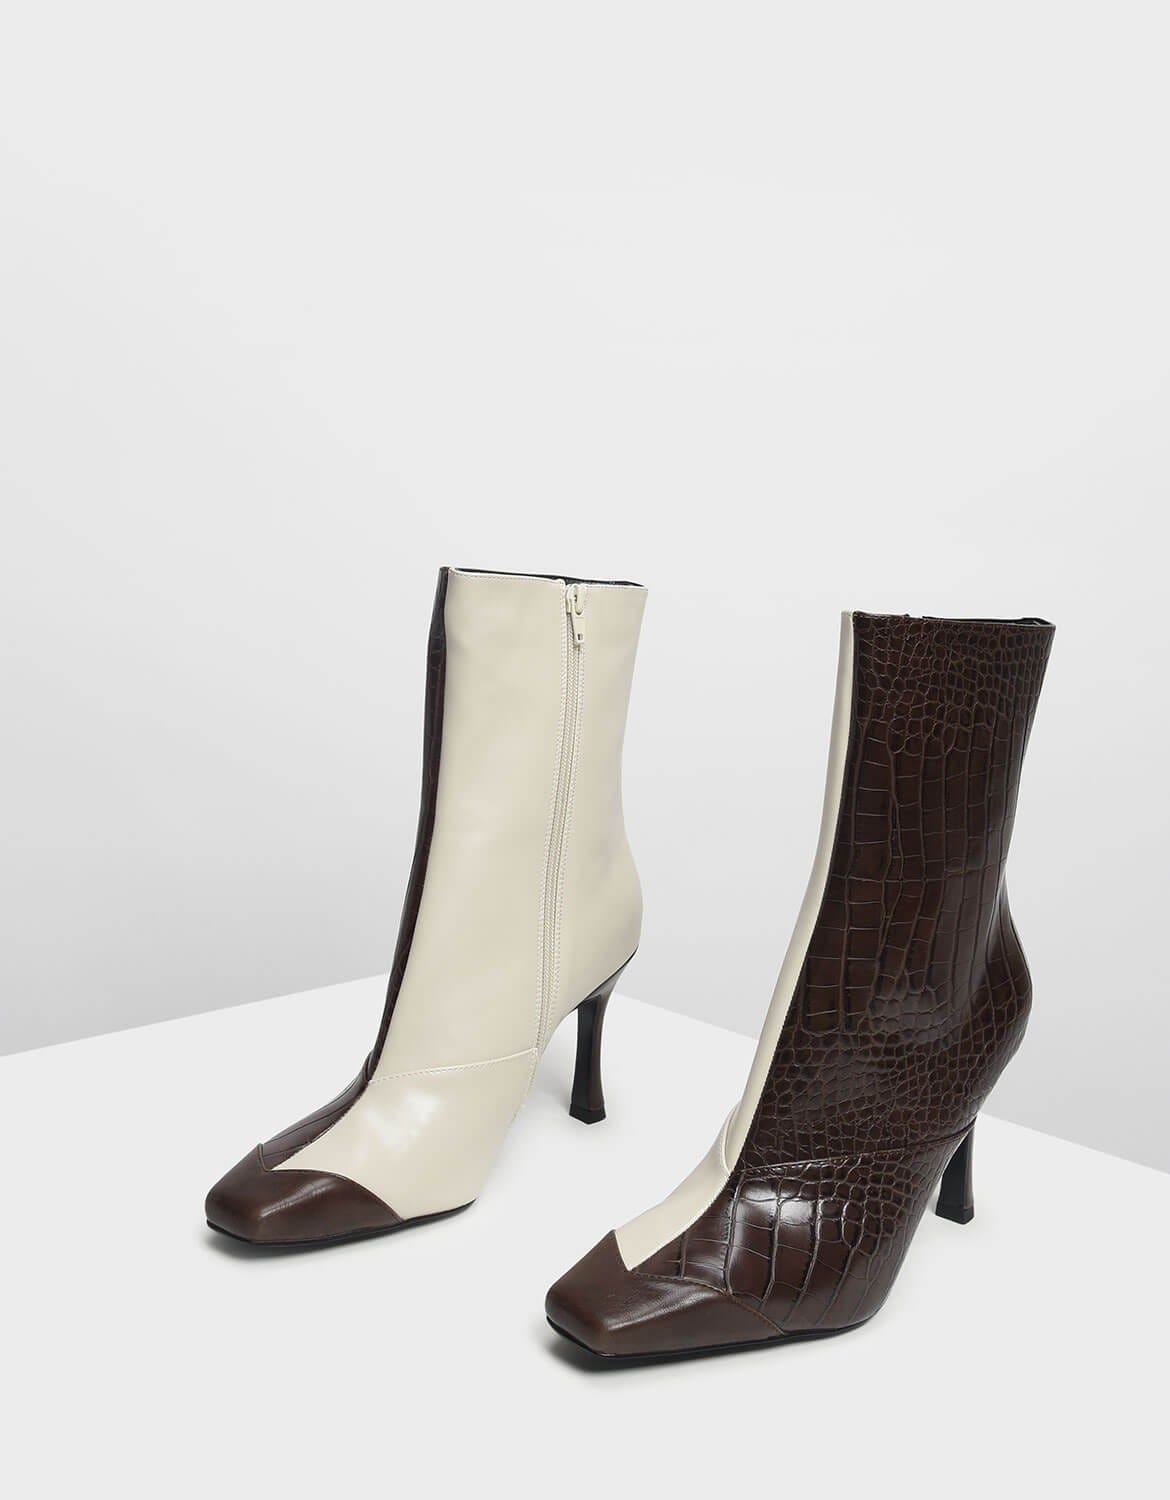 6ed9f7736e806 Womens Boots Trends - Best Winter 2019 Boot Styles